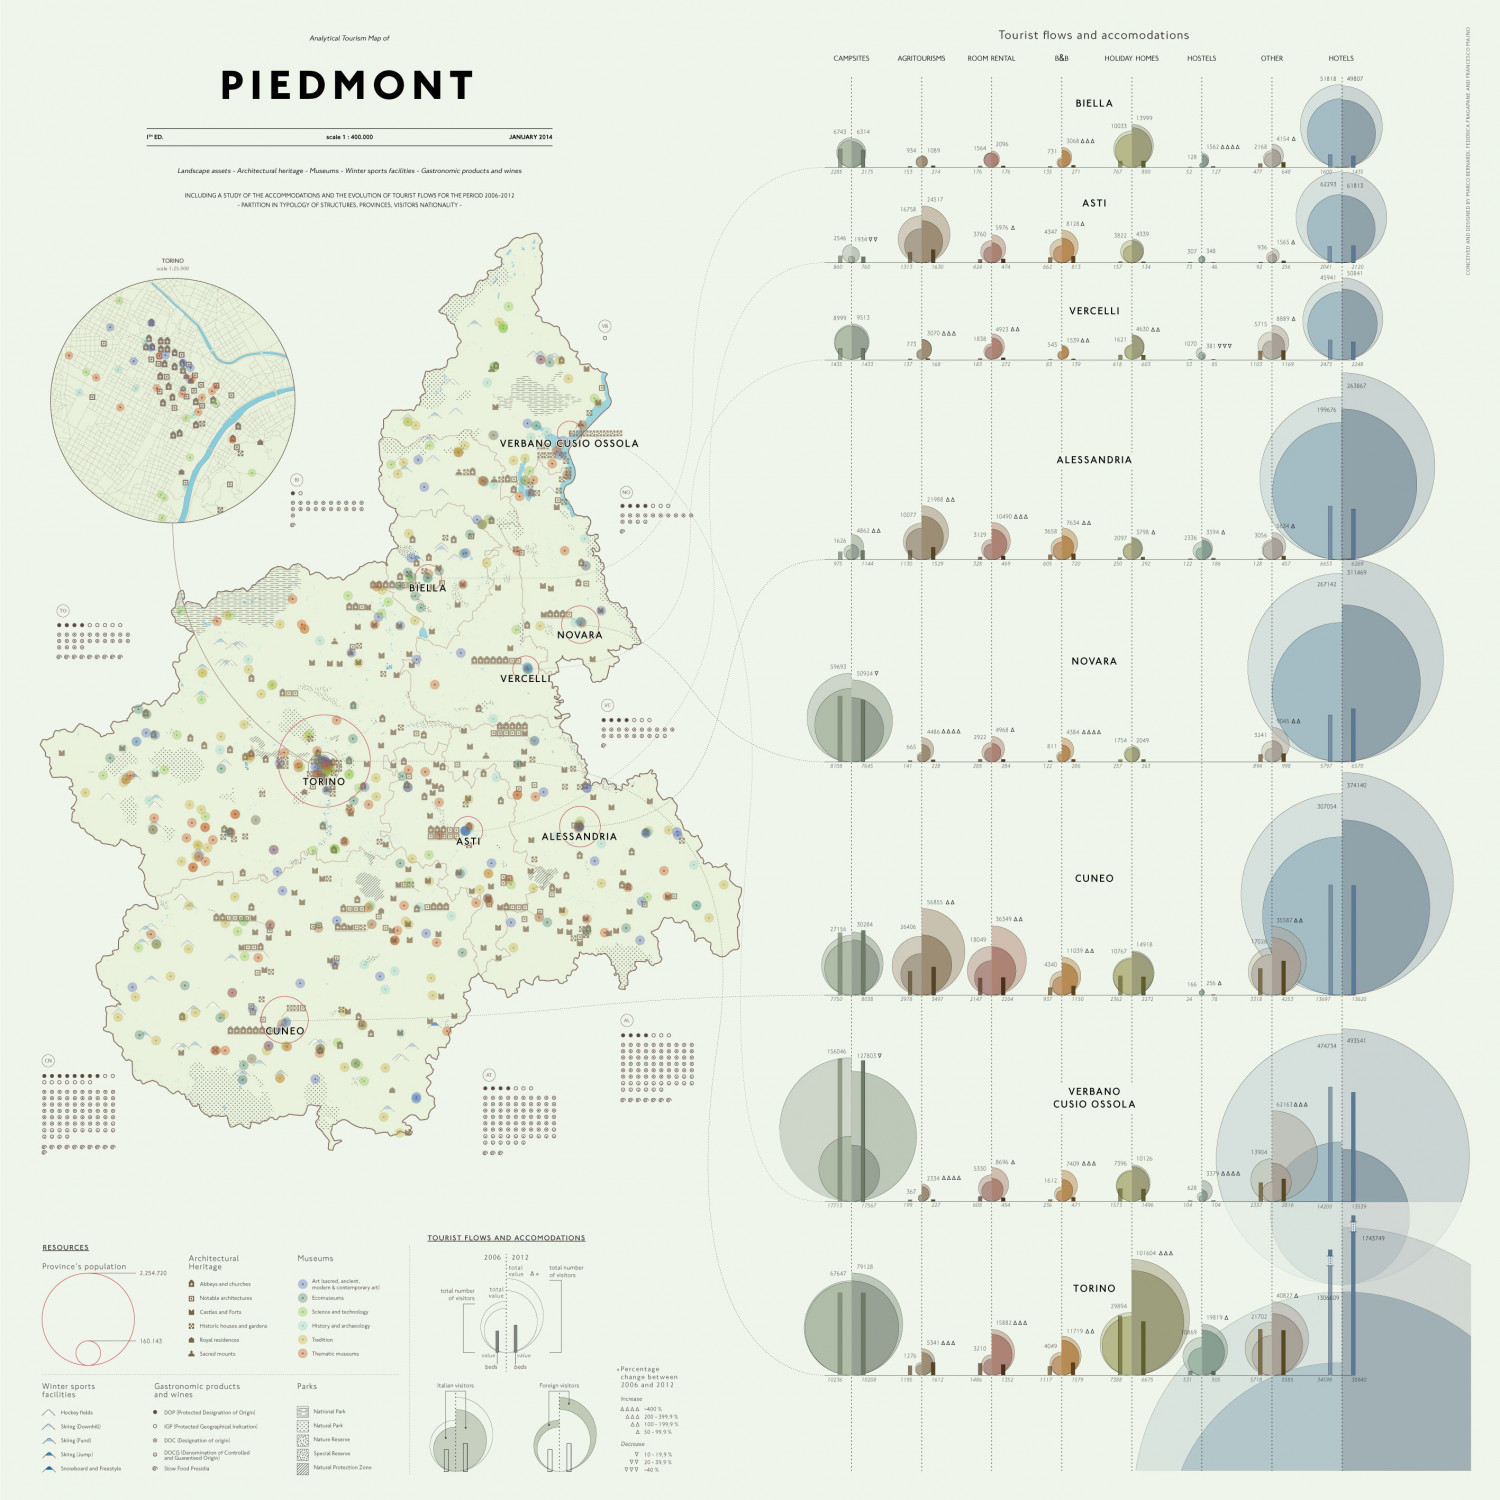 The Analytical Tourism Map of Piedmont Visually